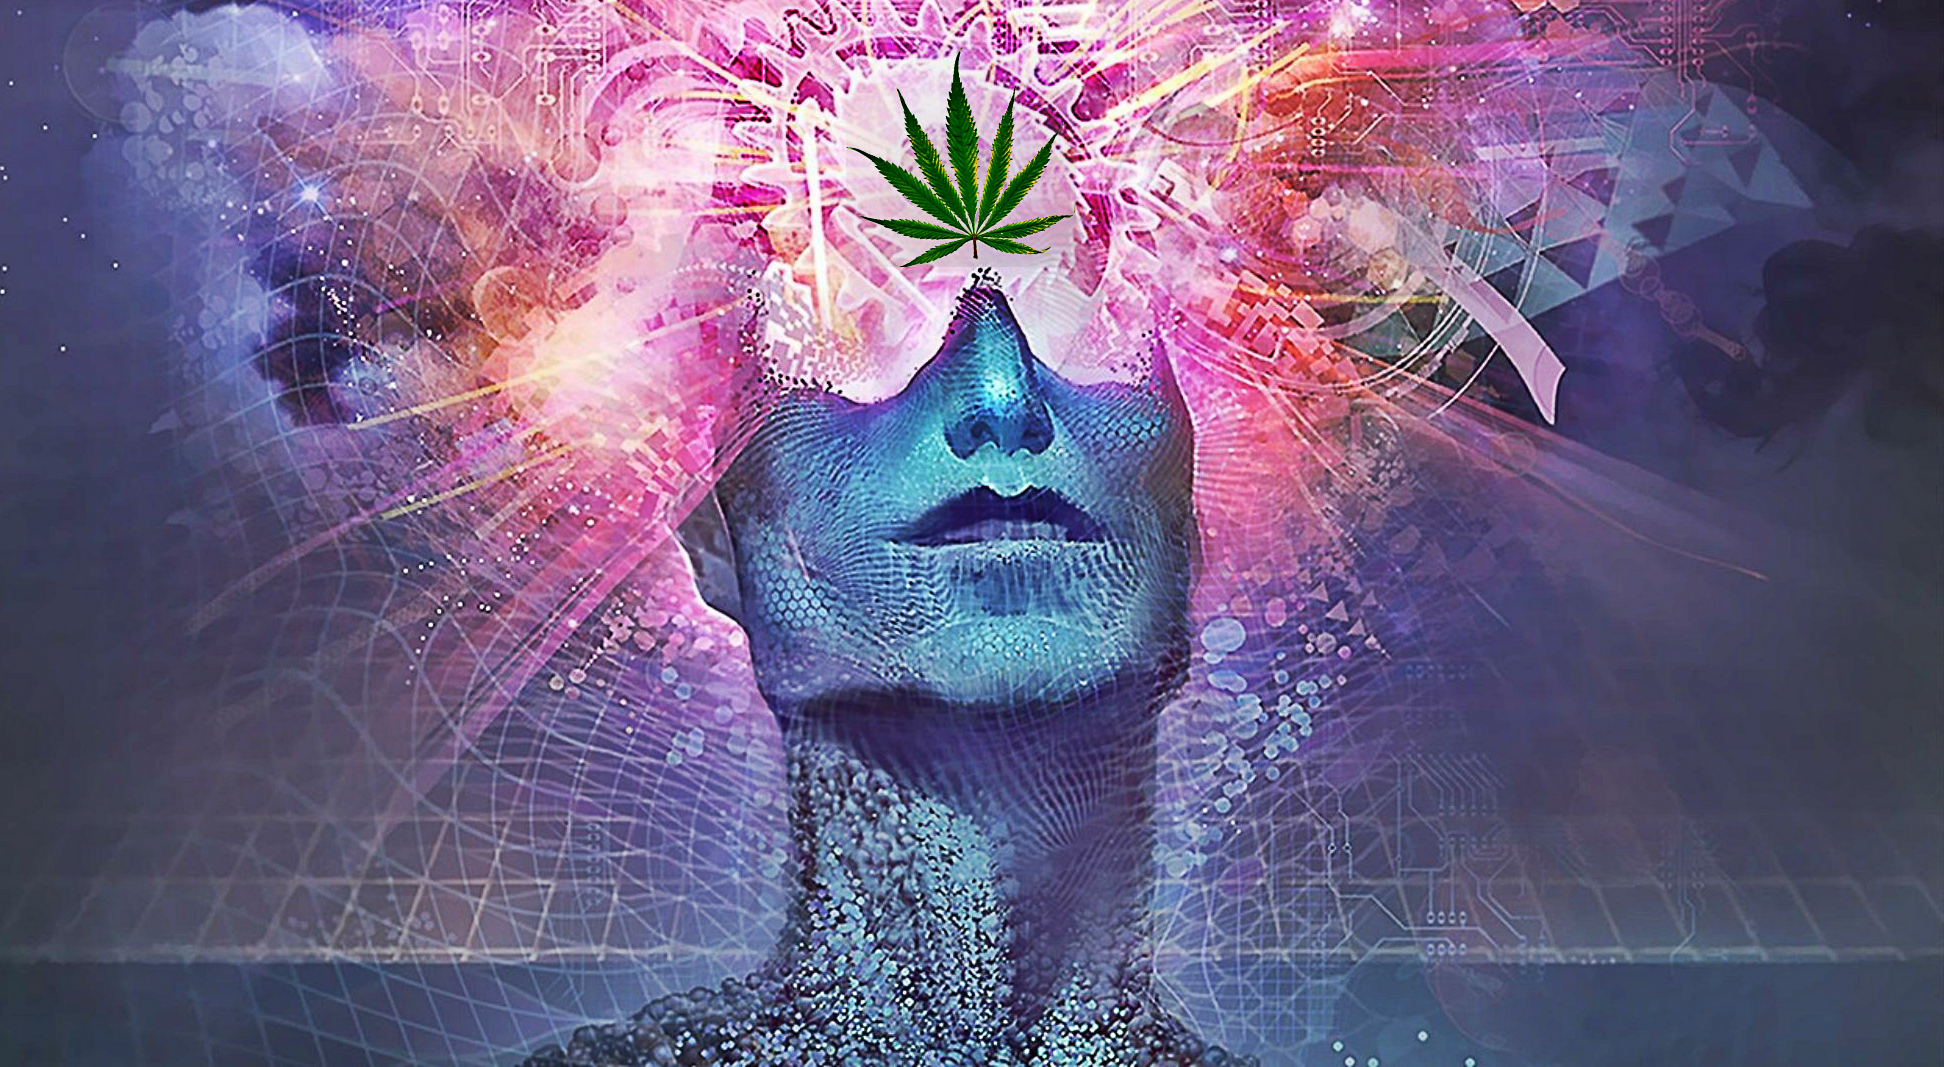 THIS Is What Happens In The 3rd Eye When We Smoke Cannabis... 1